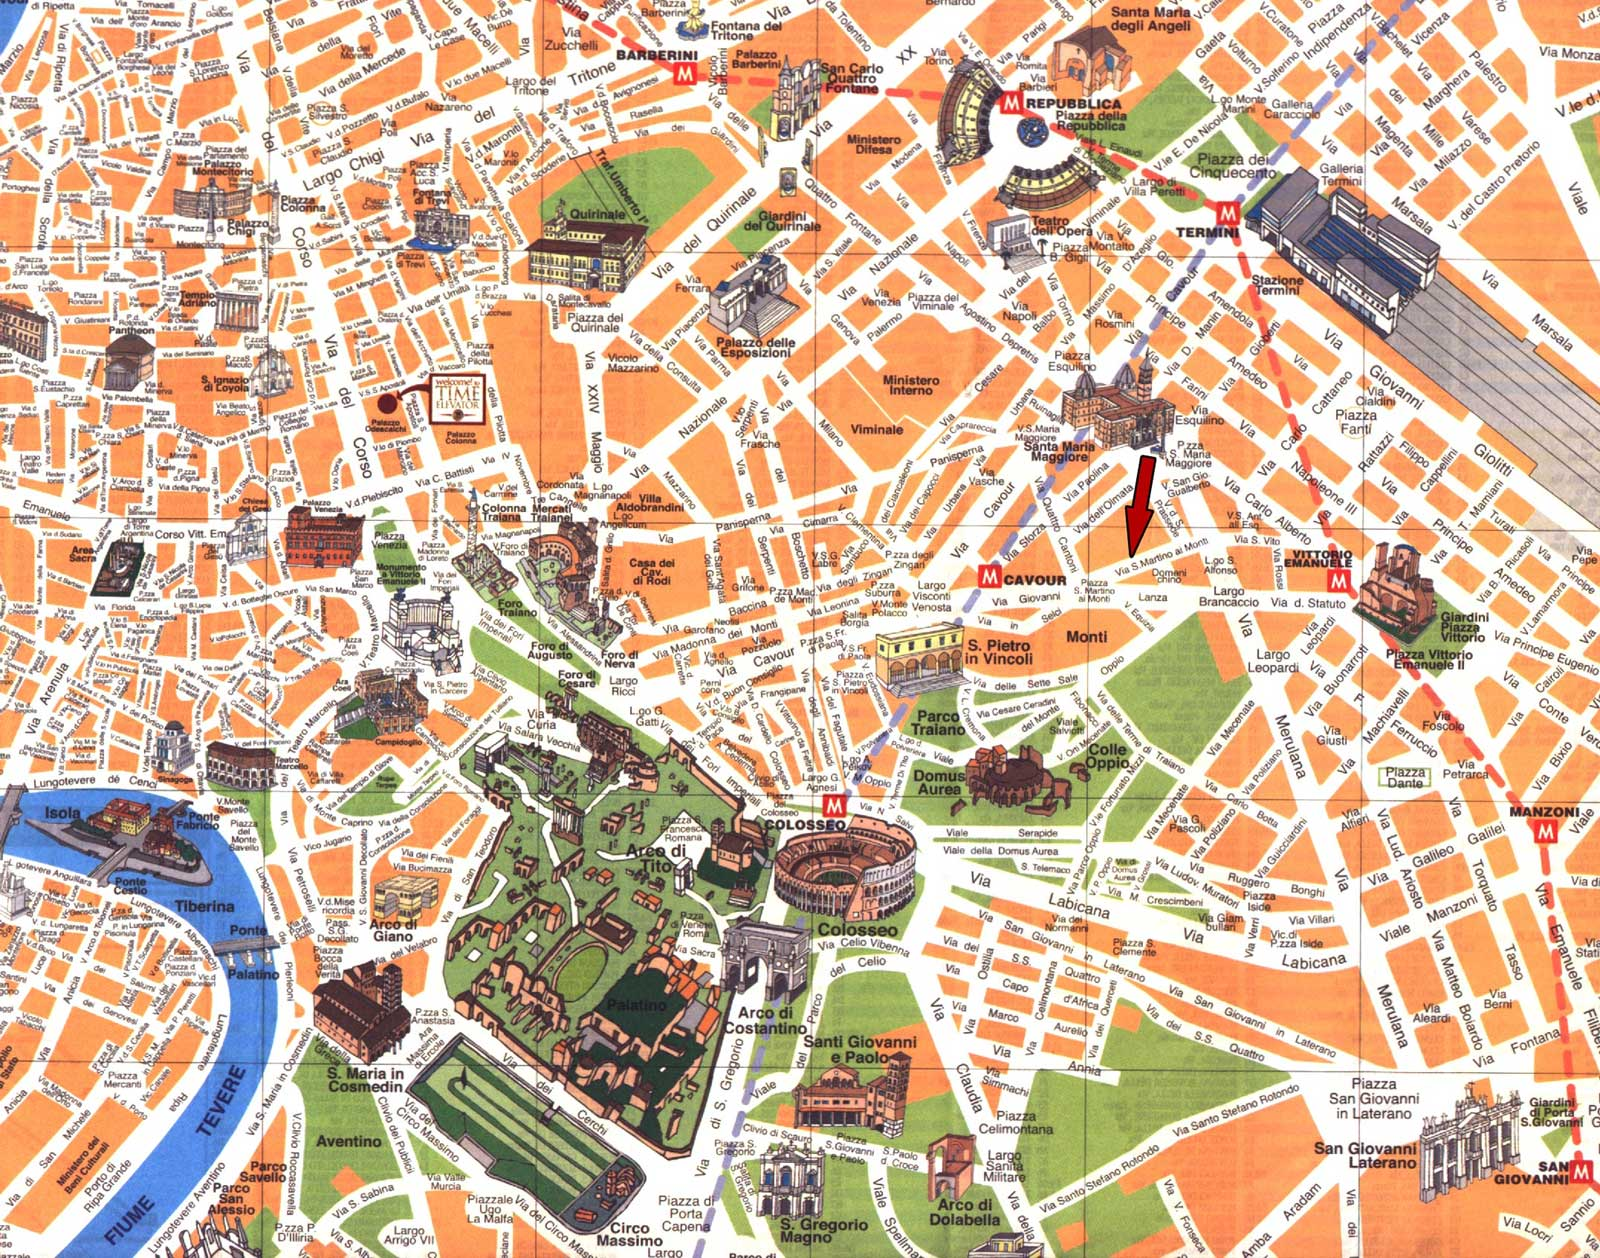 Detailed travel map of Rome city center. Rome city center detailed ...